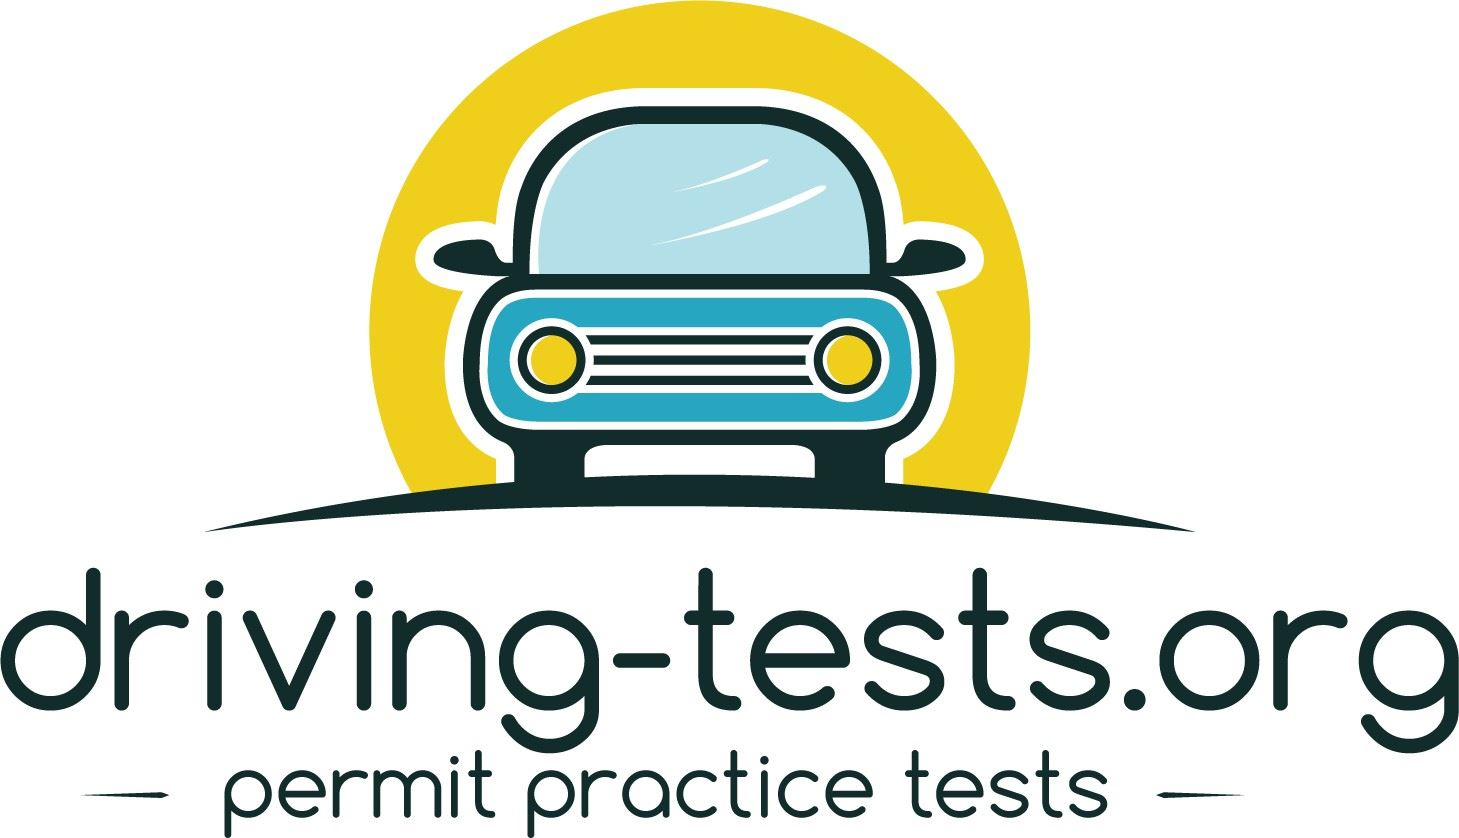 drivingtests.org